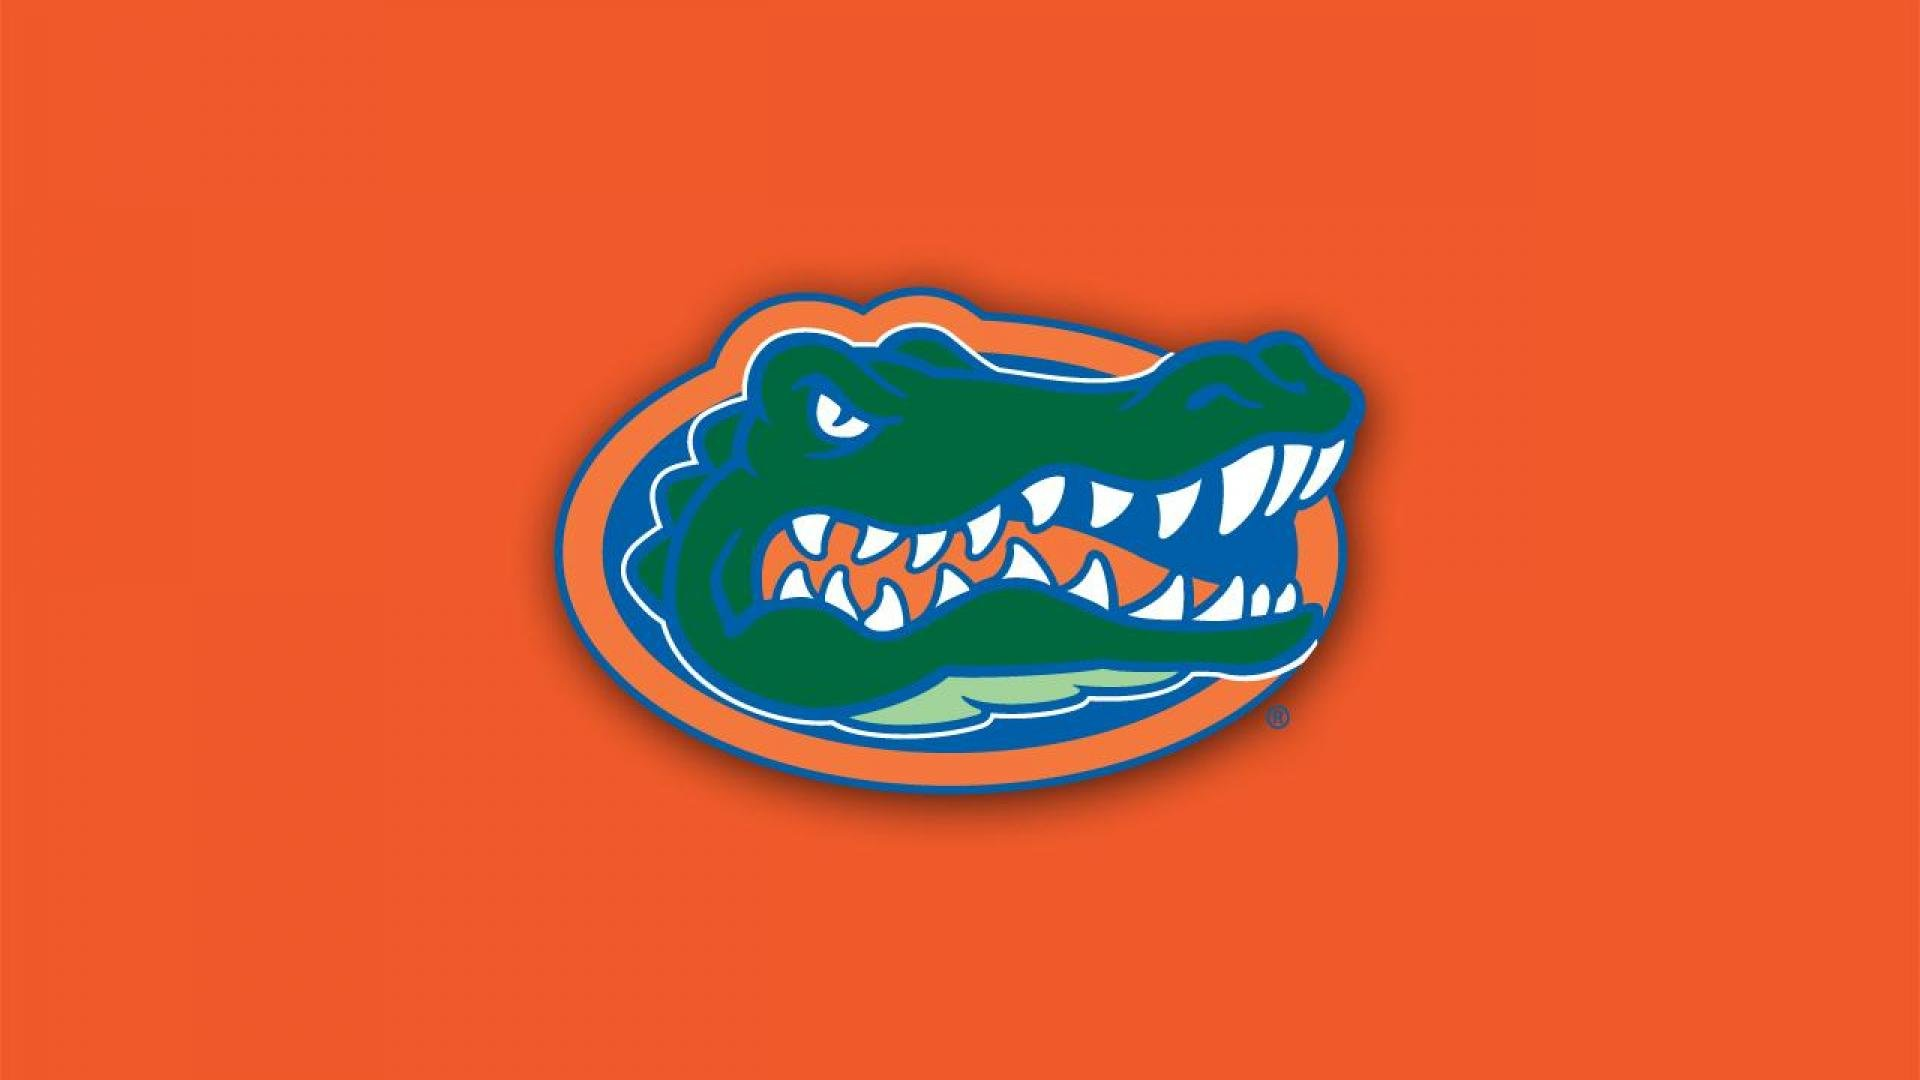 wallpaper.wiki-Free-Florida-Gators-Images-1920x1080-PIC-WPD006728-1